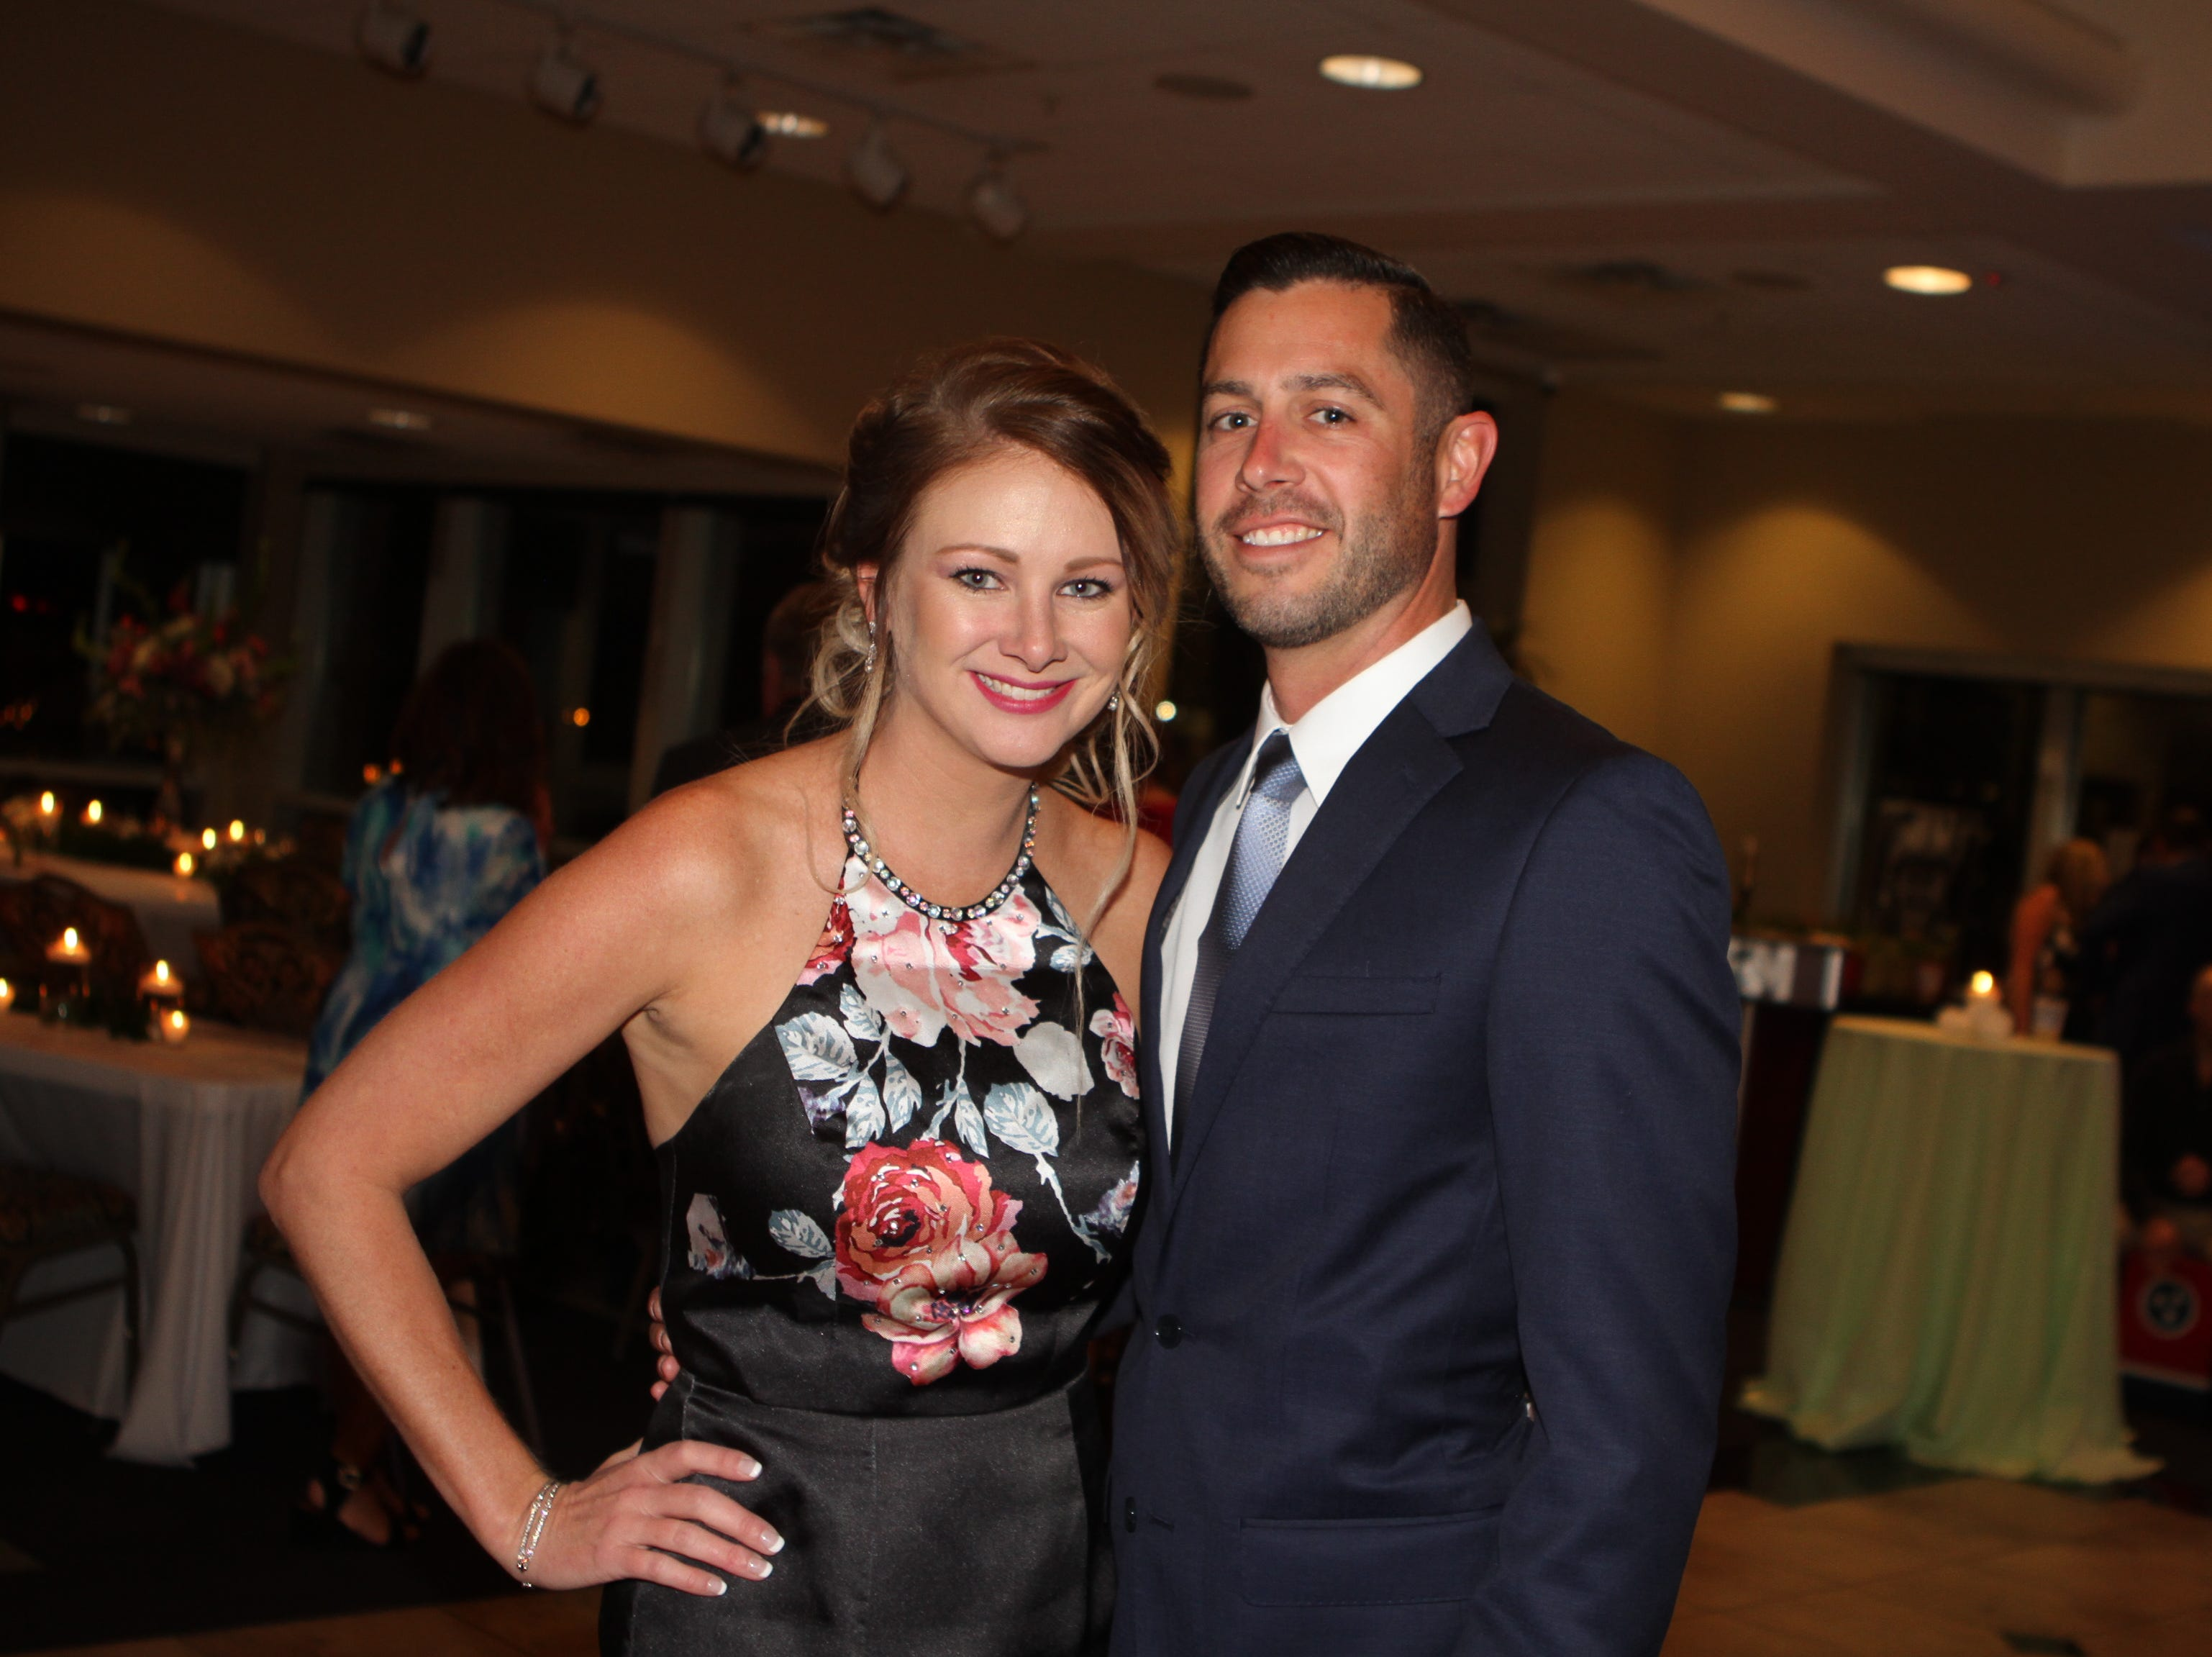 Brittnye Stanfill and Robby Shawver at the Dawn Stanfill Foundation 10th Annual Dancing Til Dawn to benefit Middle Tennessee children battling pediatric cancer on Saturday, Sept. 29, 2018.